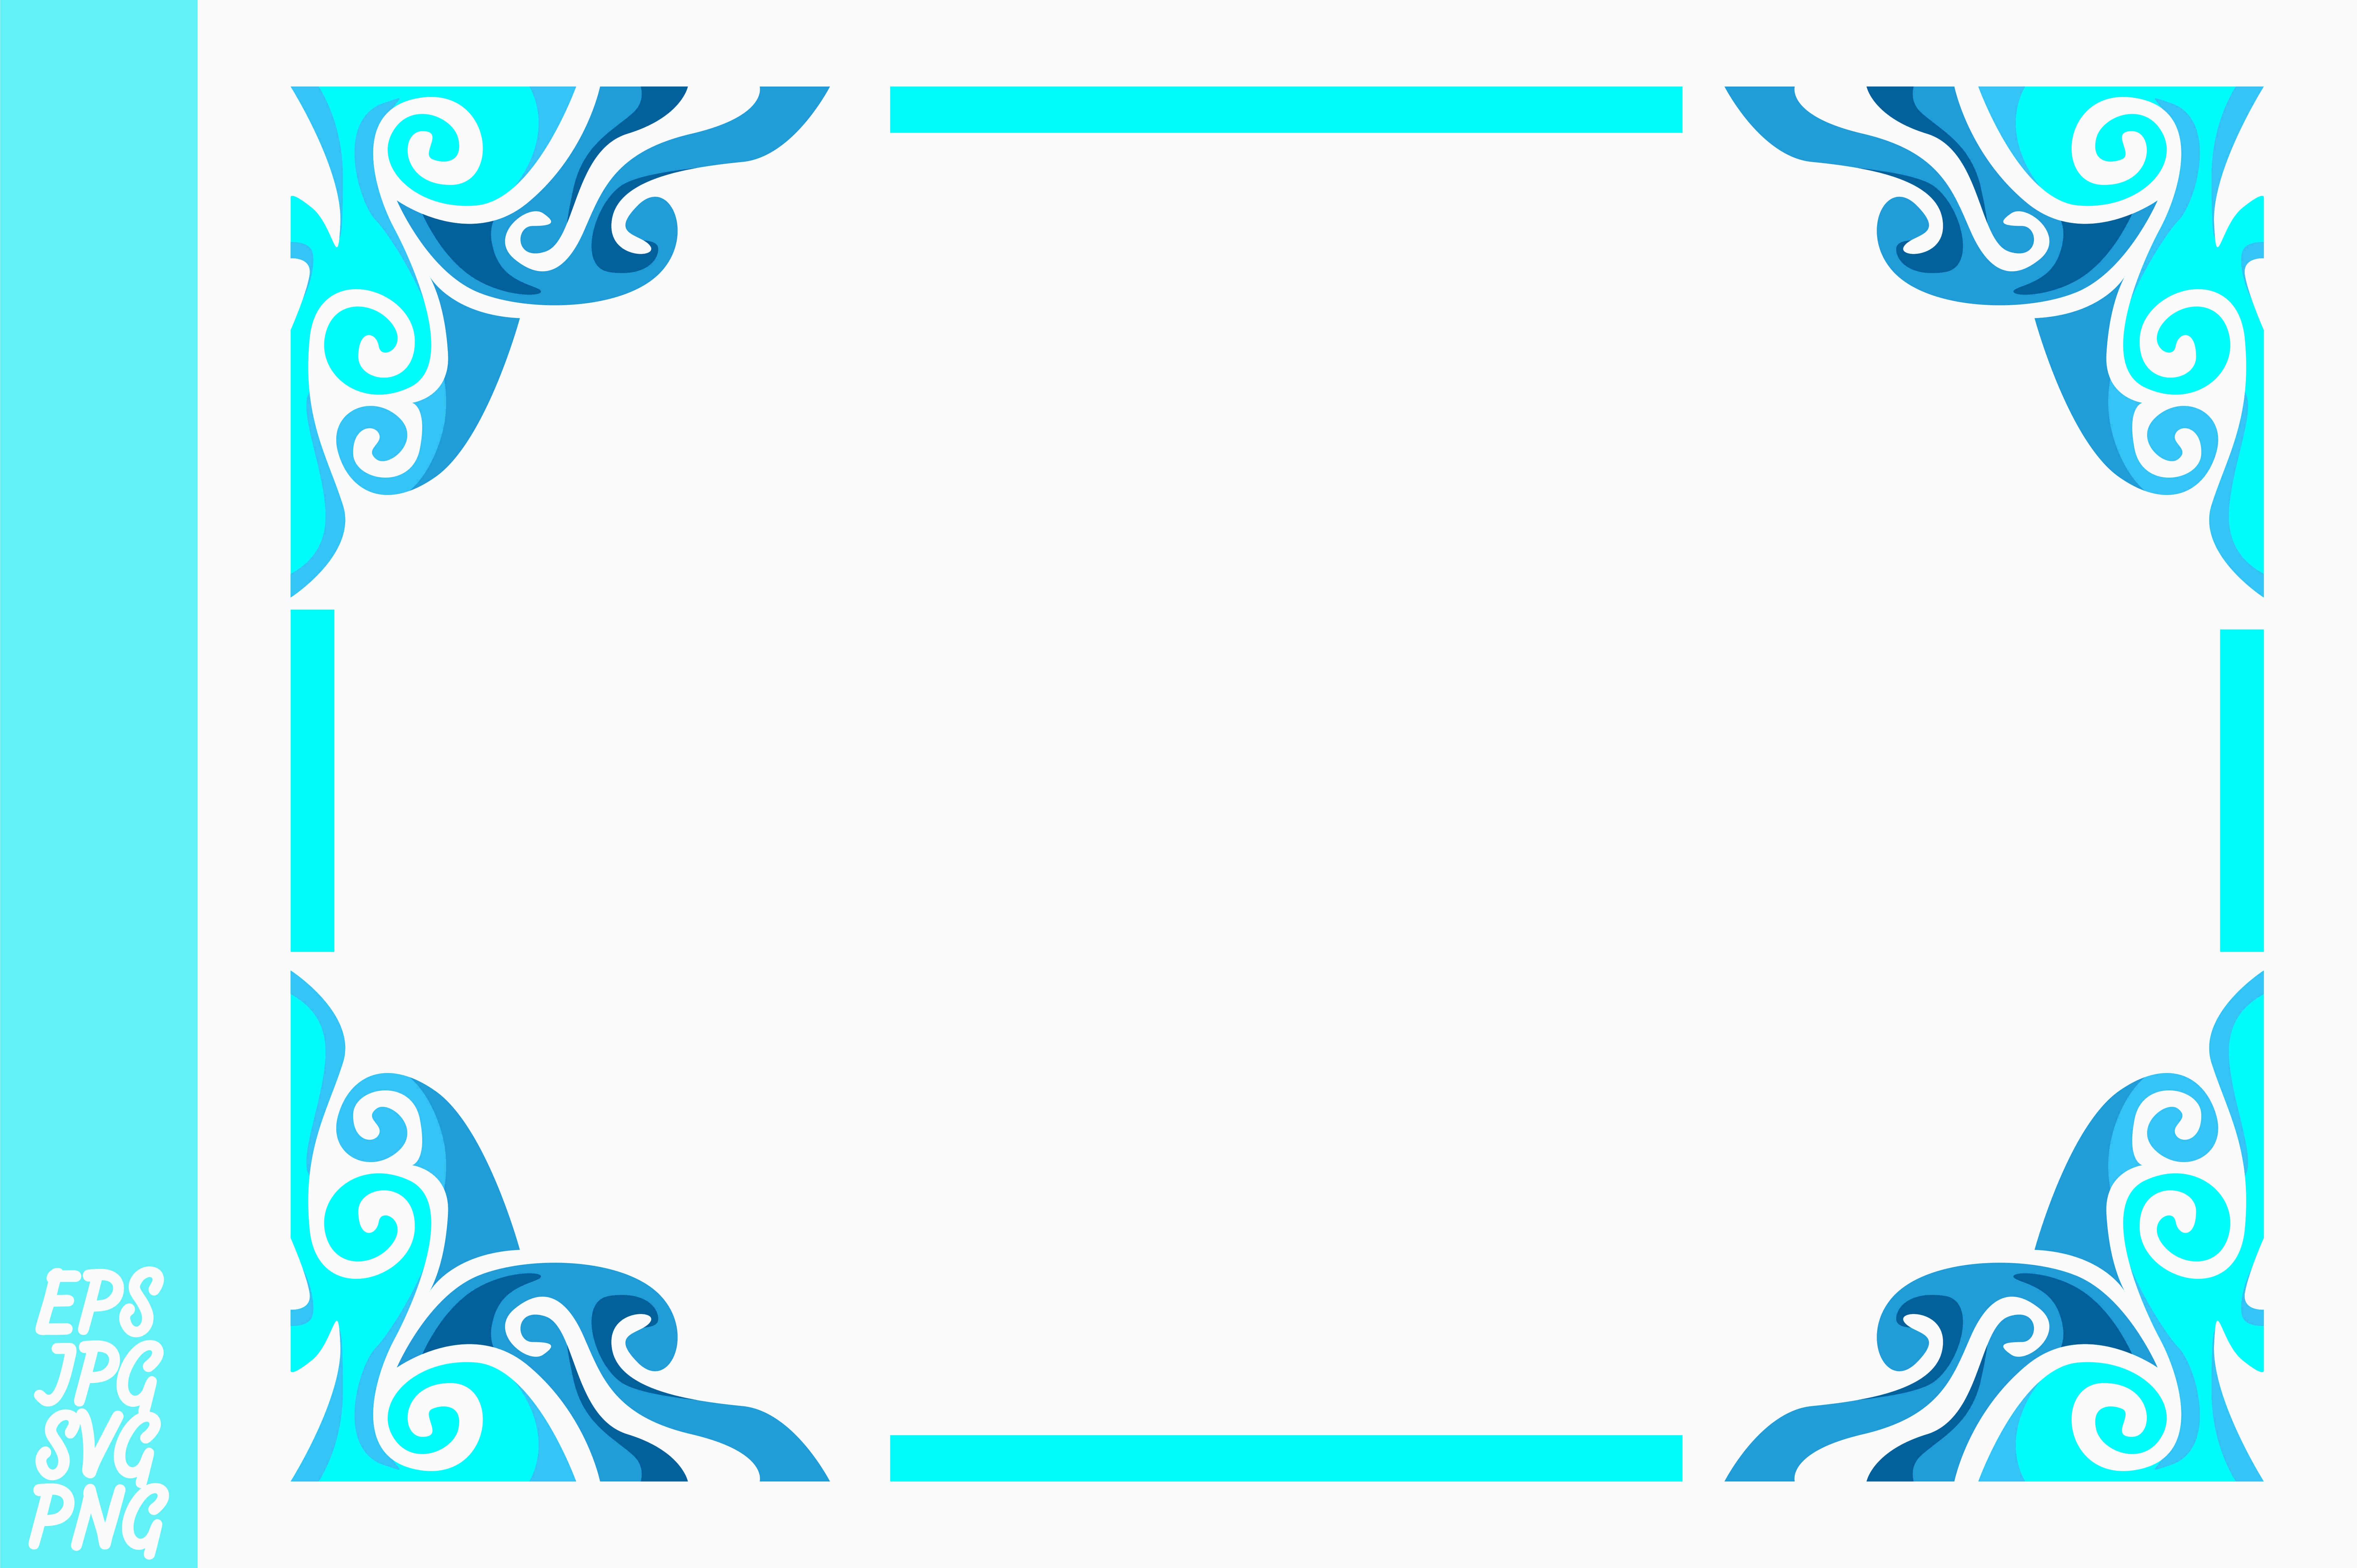 Download Free Blue Ornament Border Vector Graphic By Arief Sapta Adjie Ii for Cricut Explore, Silhouette and other cutting machines.